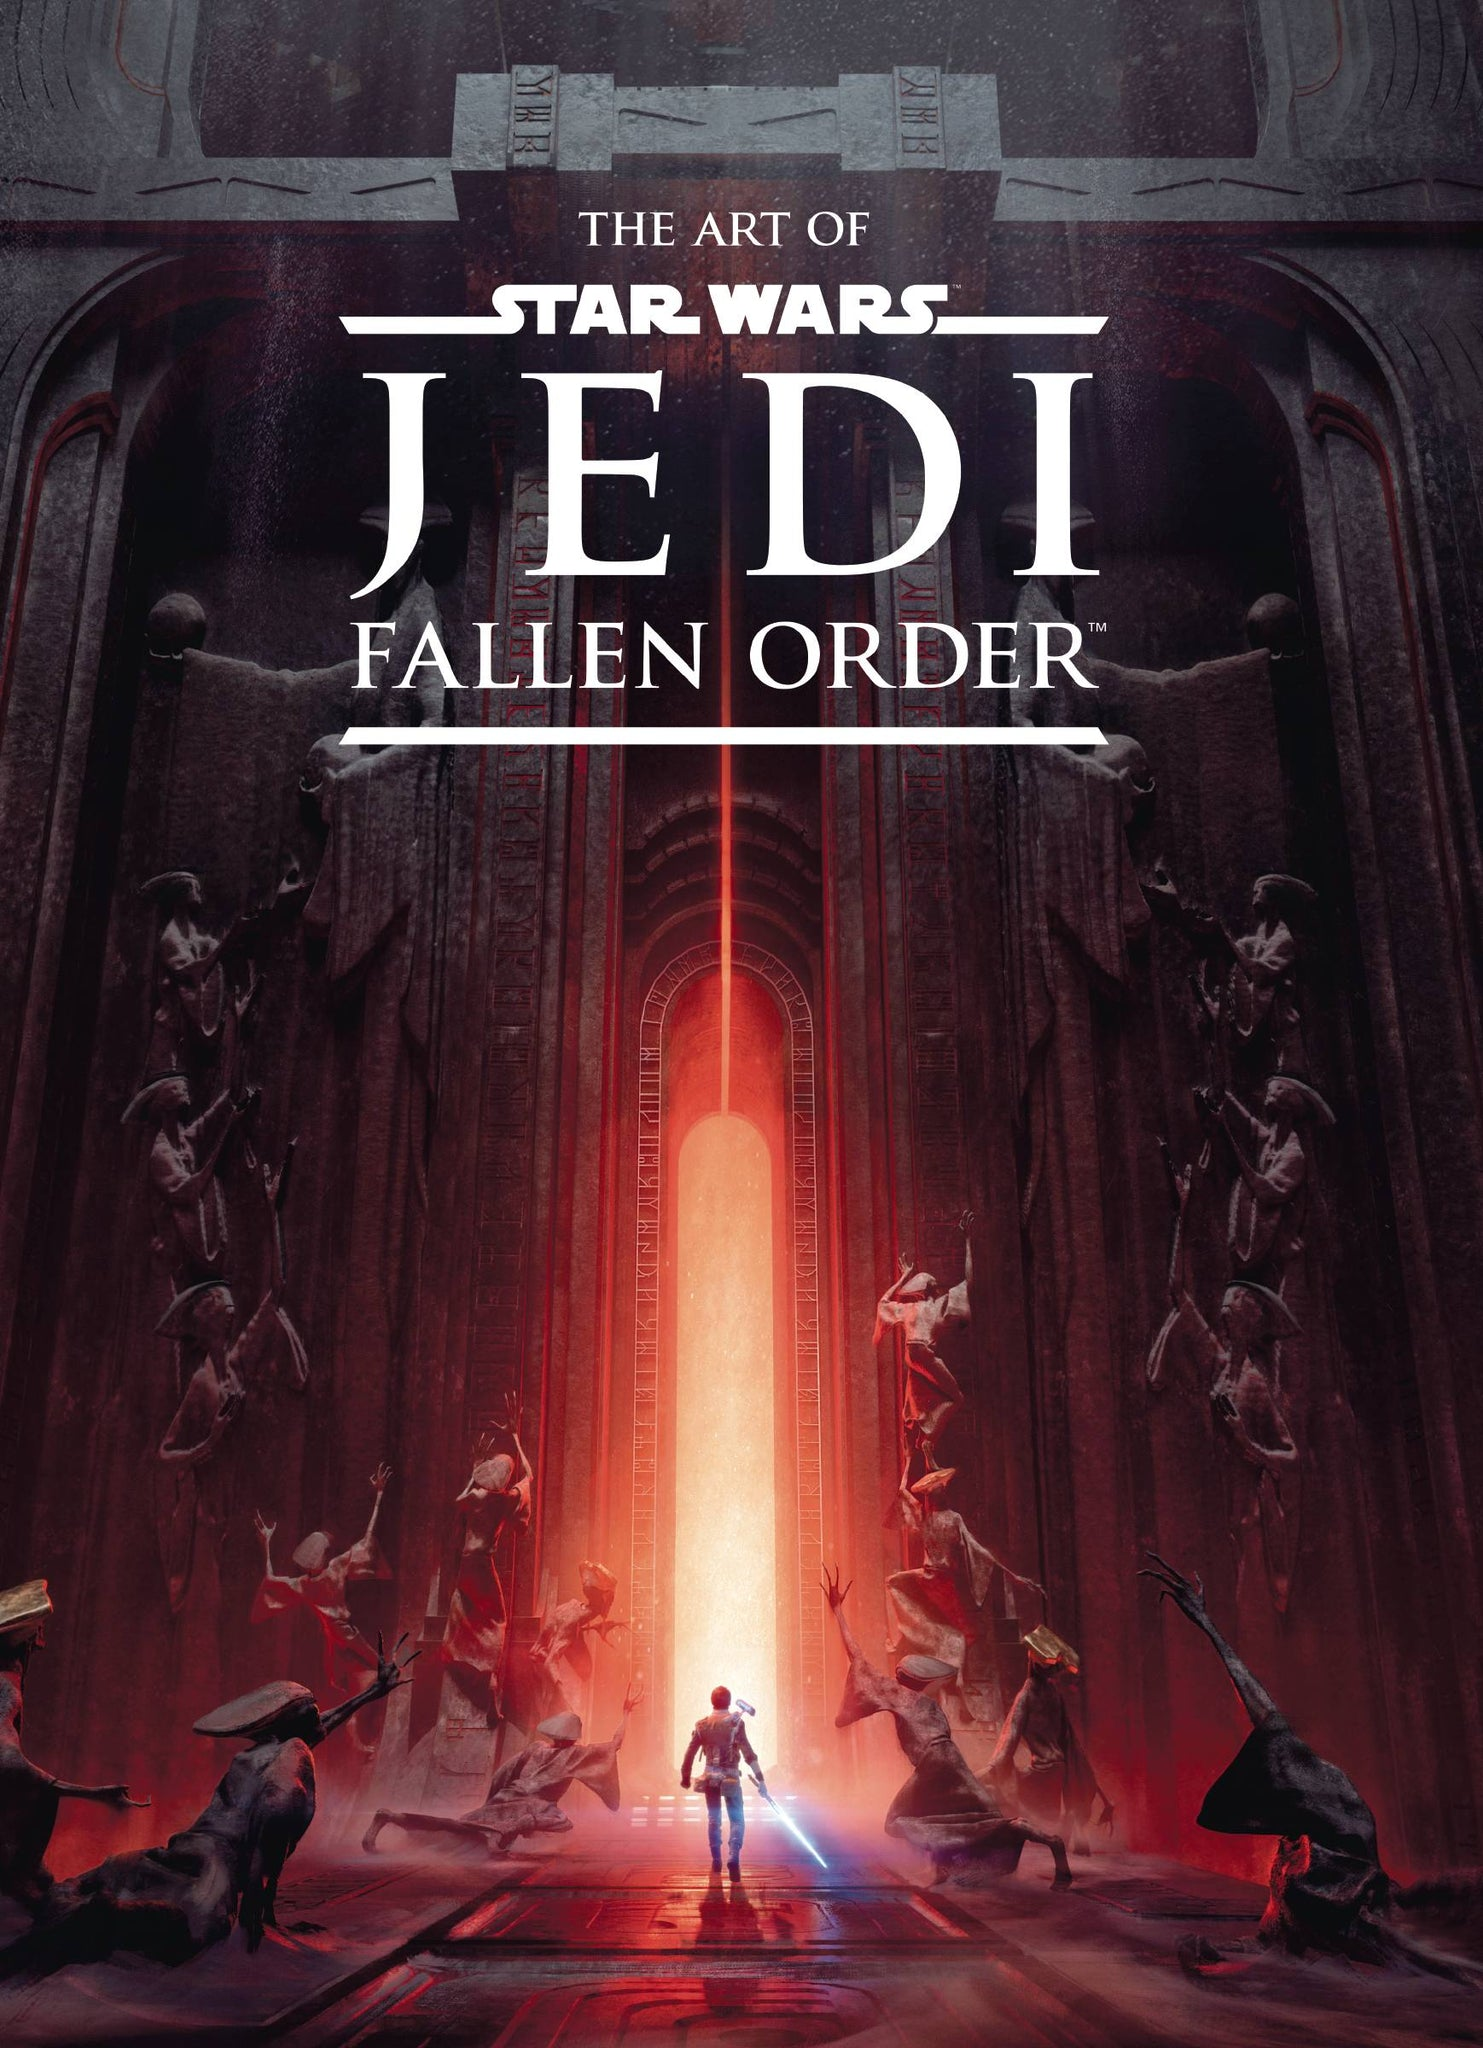 ART OF STAR WARS JEDI FALLEN ORDER HC